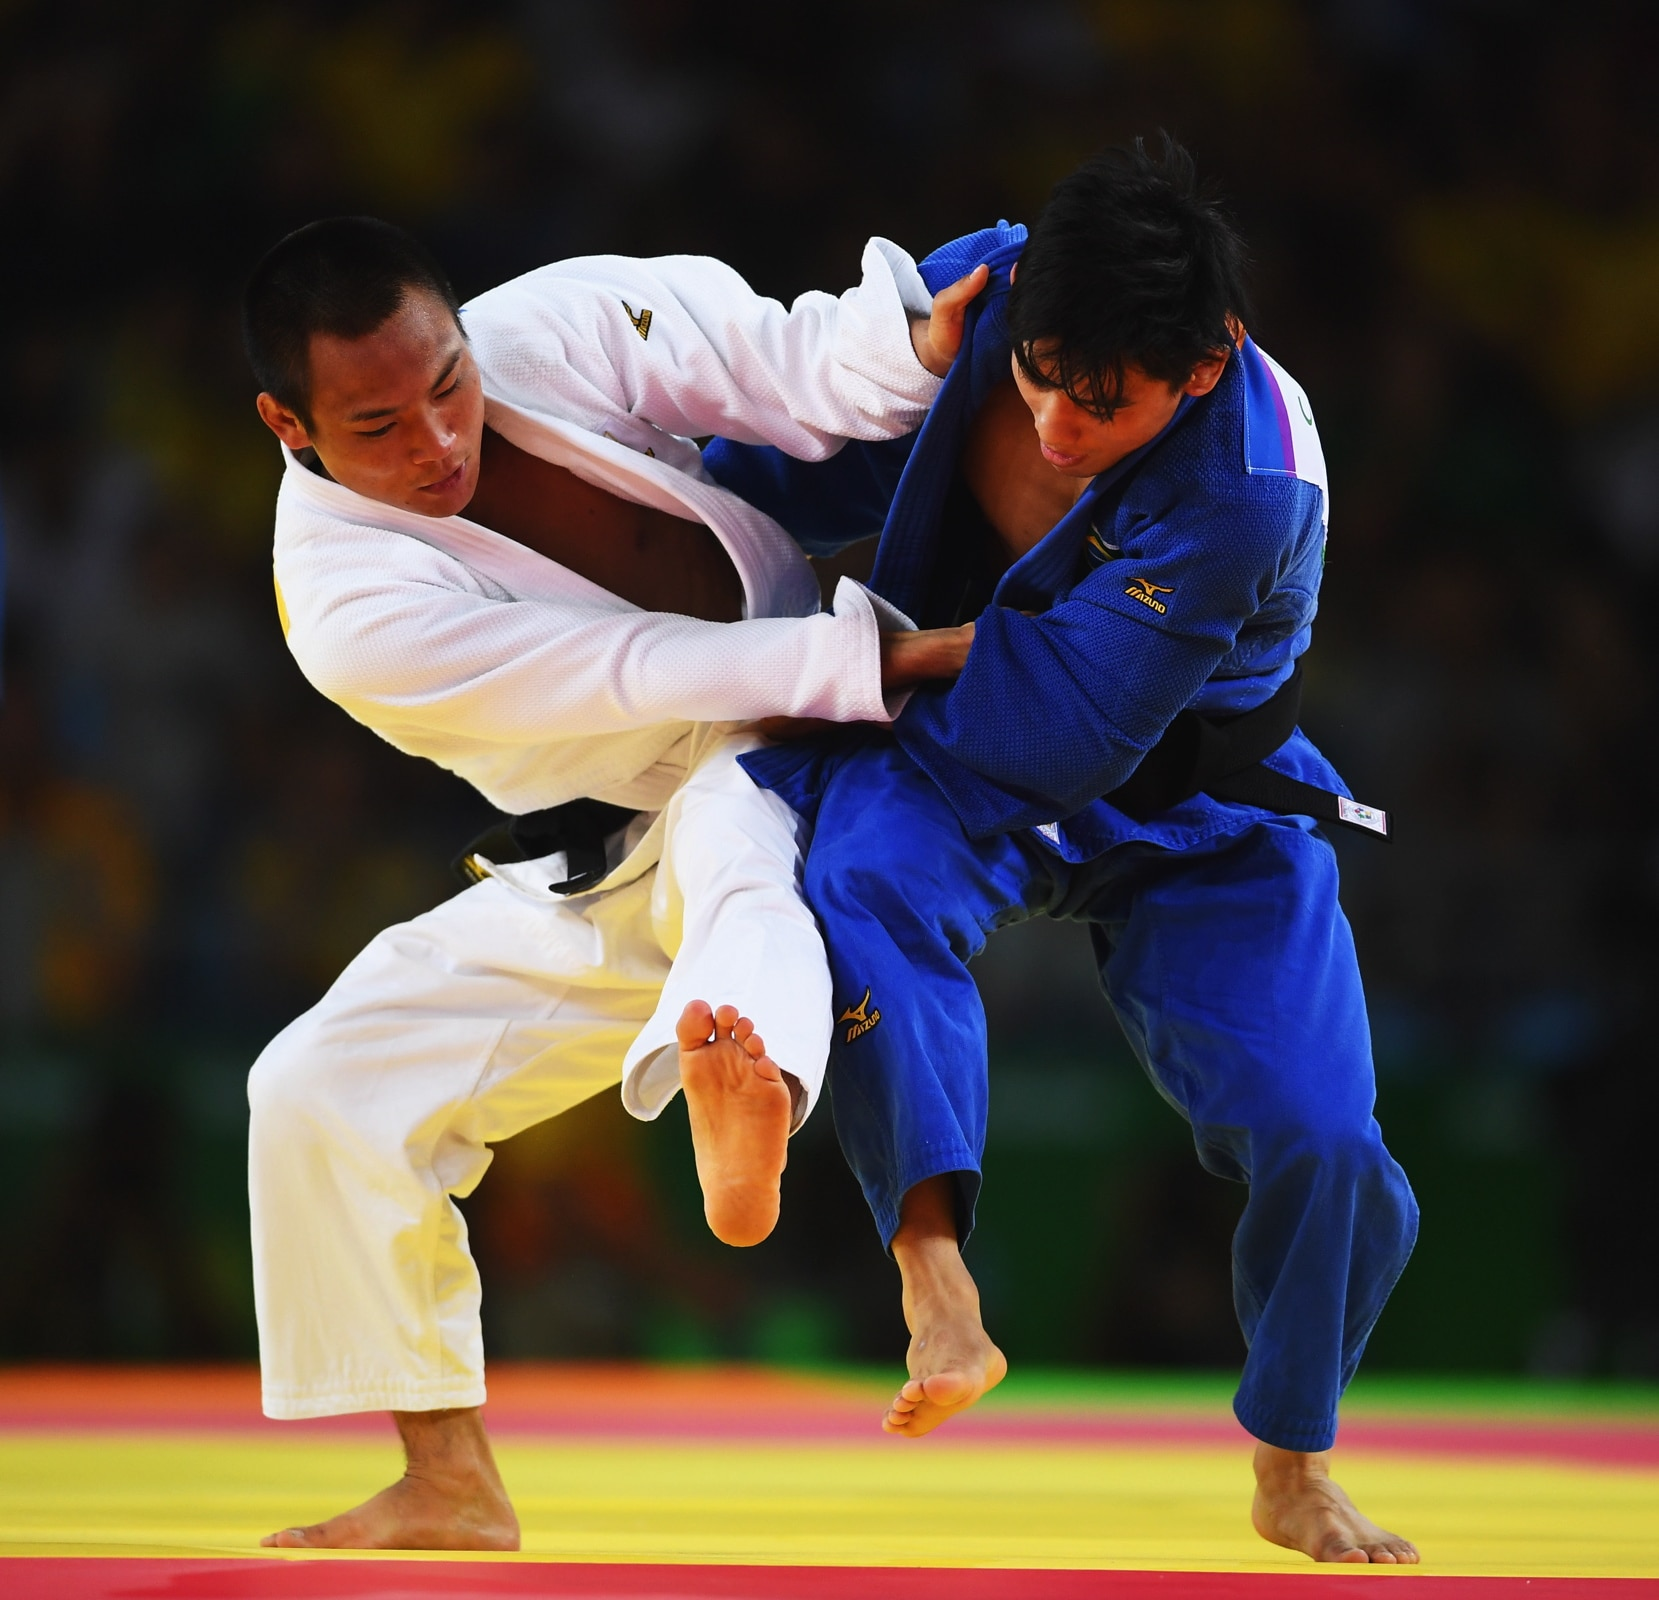 Judo 60 - 66kg (Half-lightweight) men